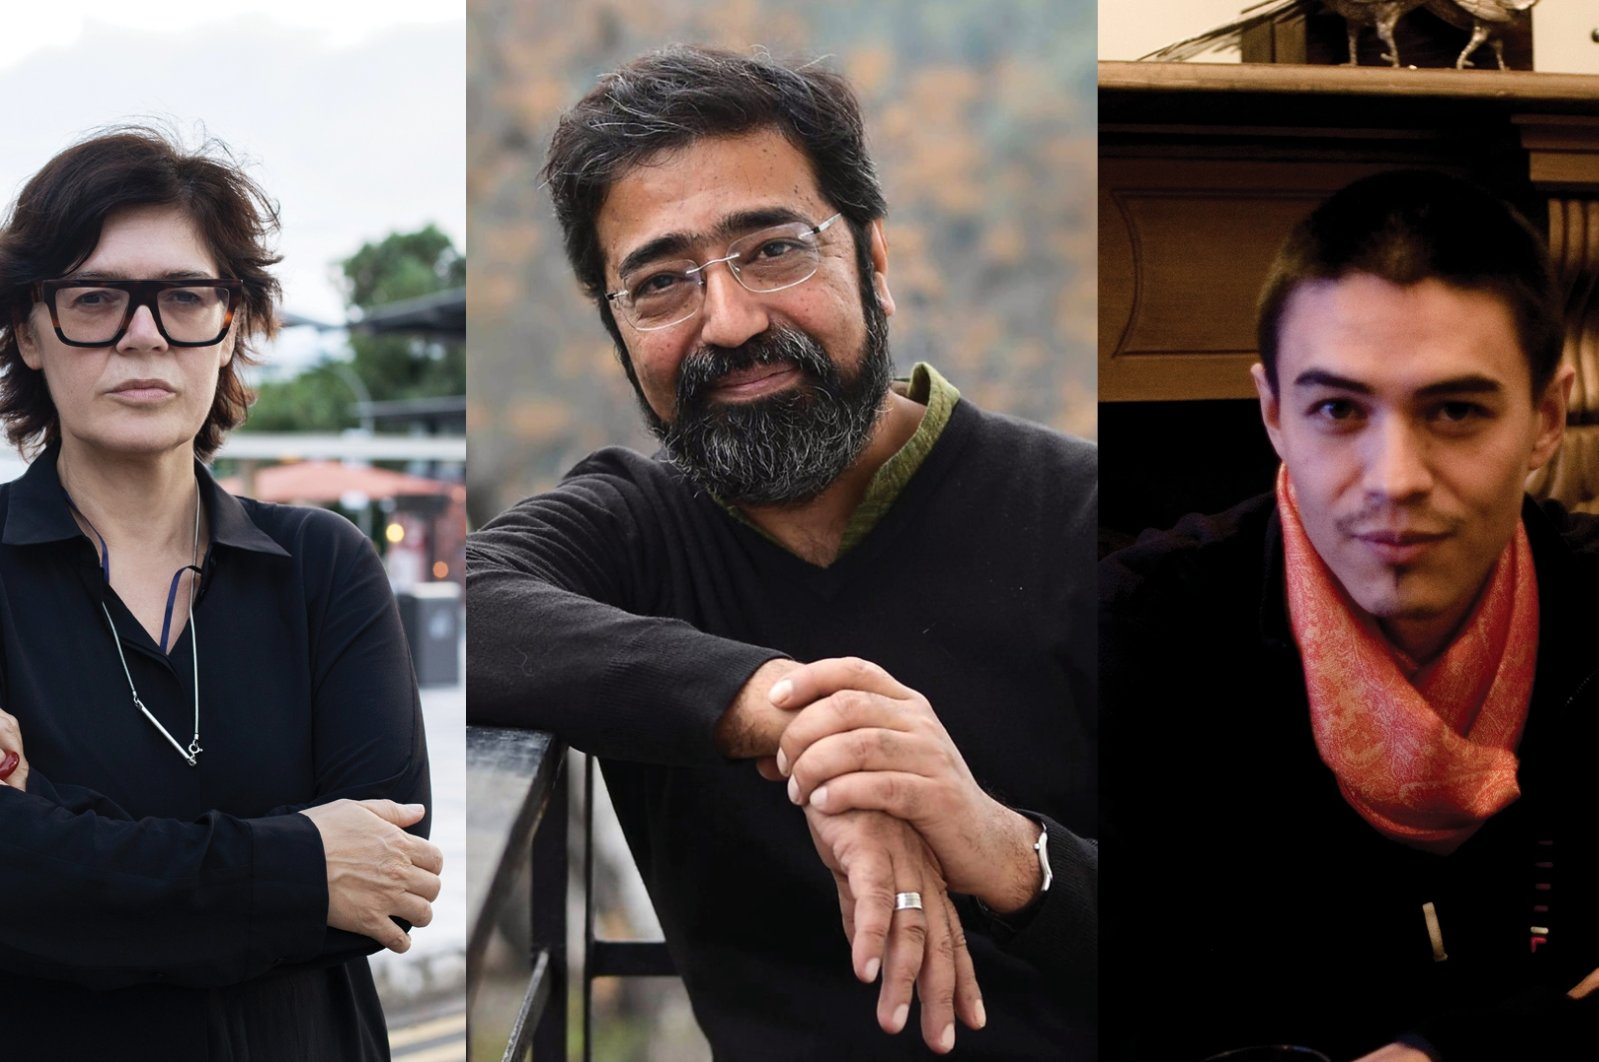 The curators of the 2021 Istanbul Biennial, Ute Meta Bauer, Amar Kanwar and David Teh, are seen from left to right in this photo collage.